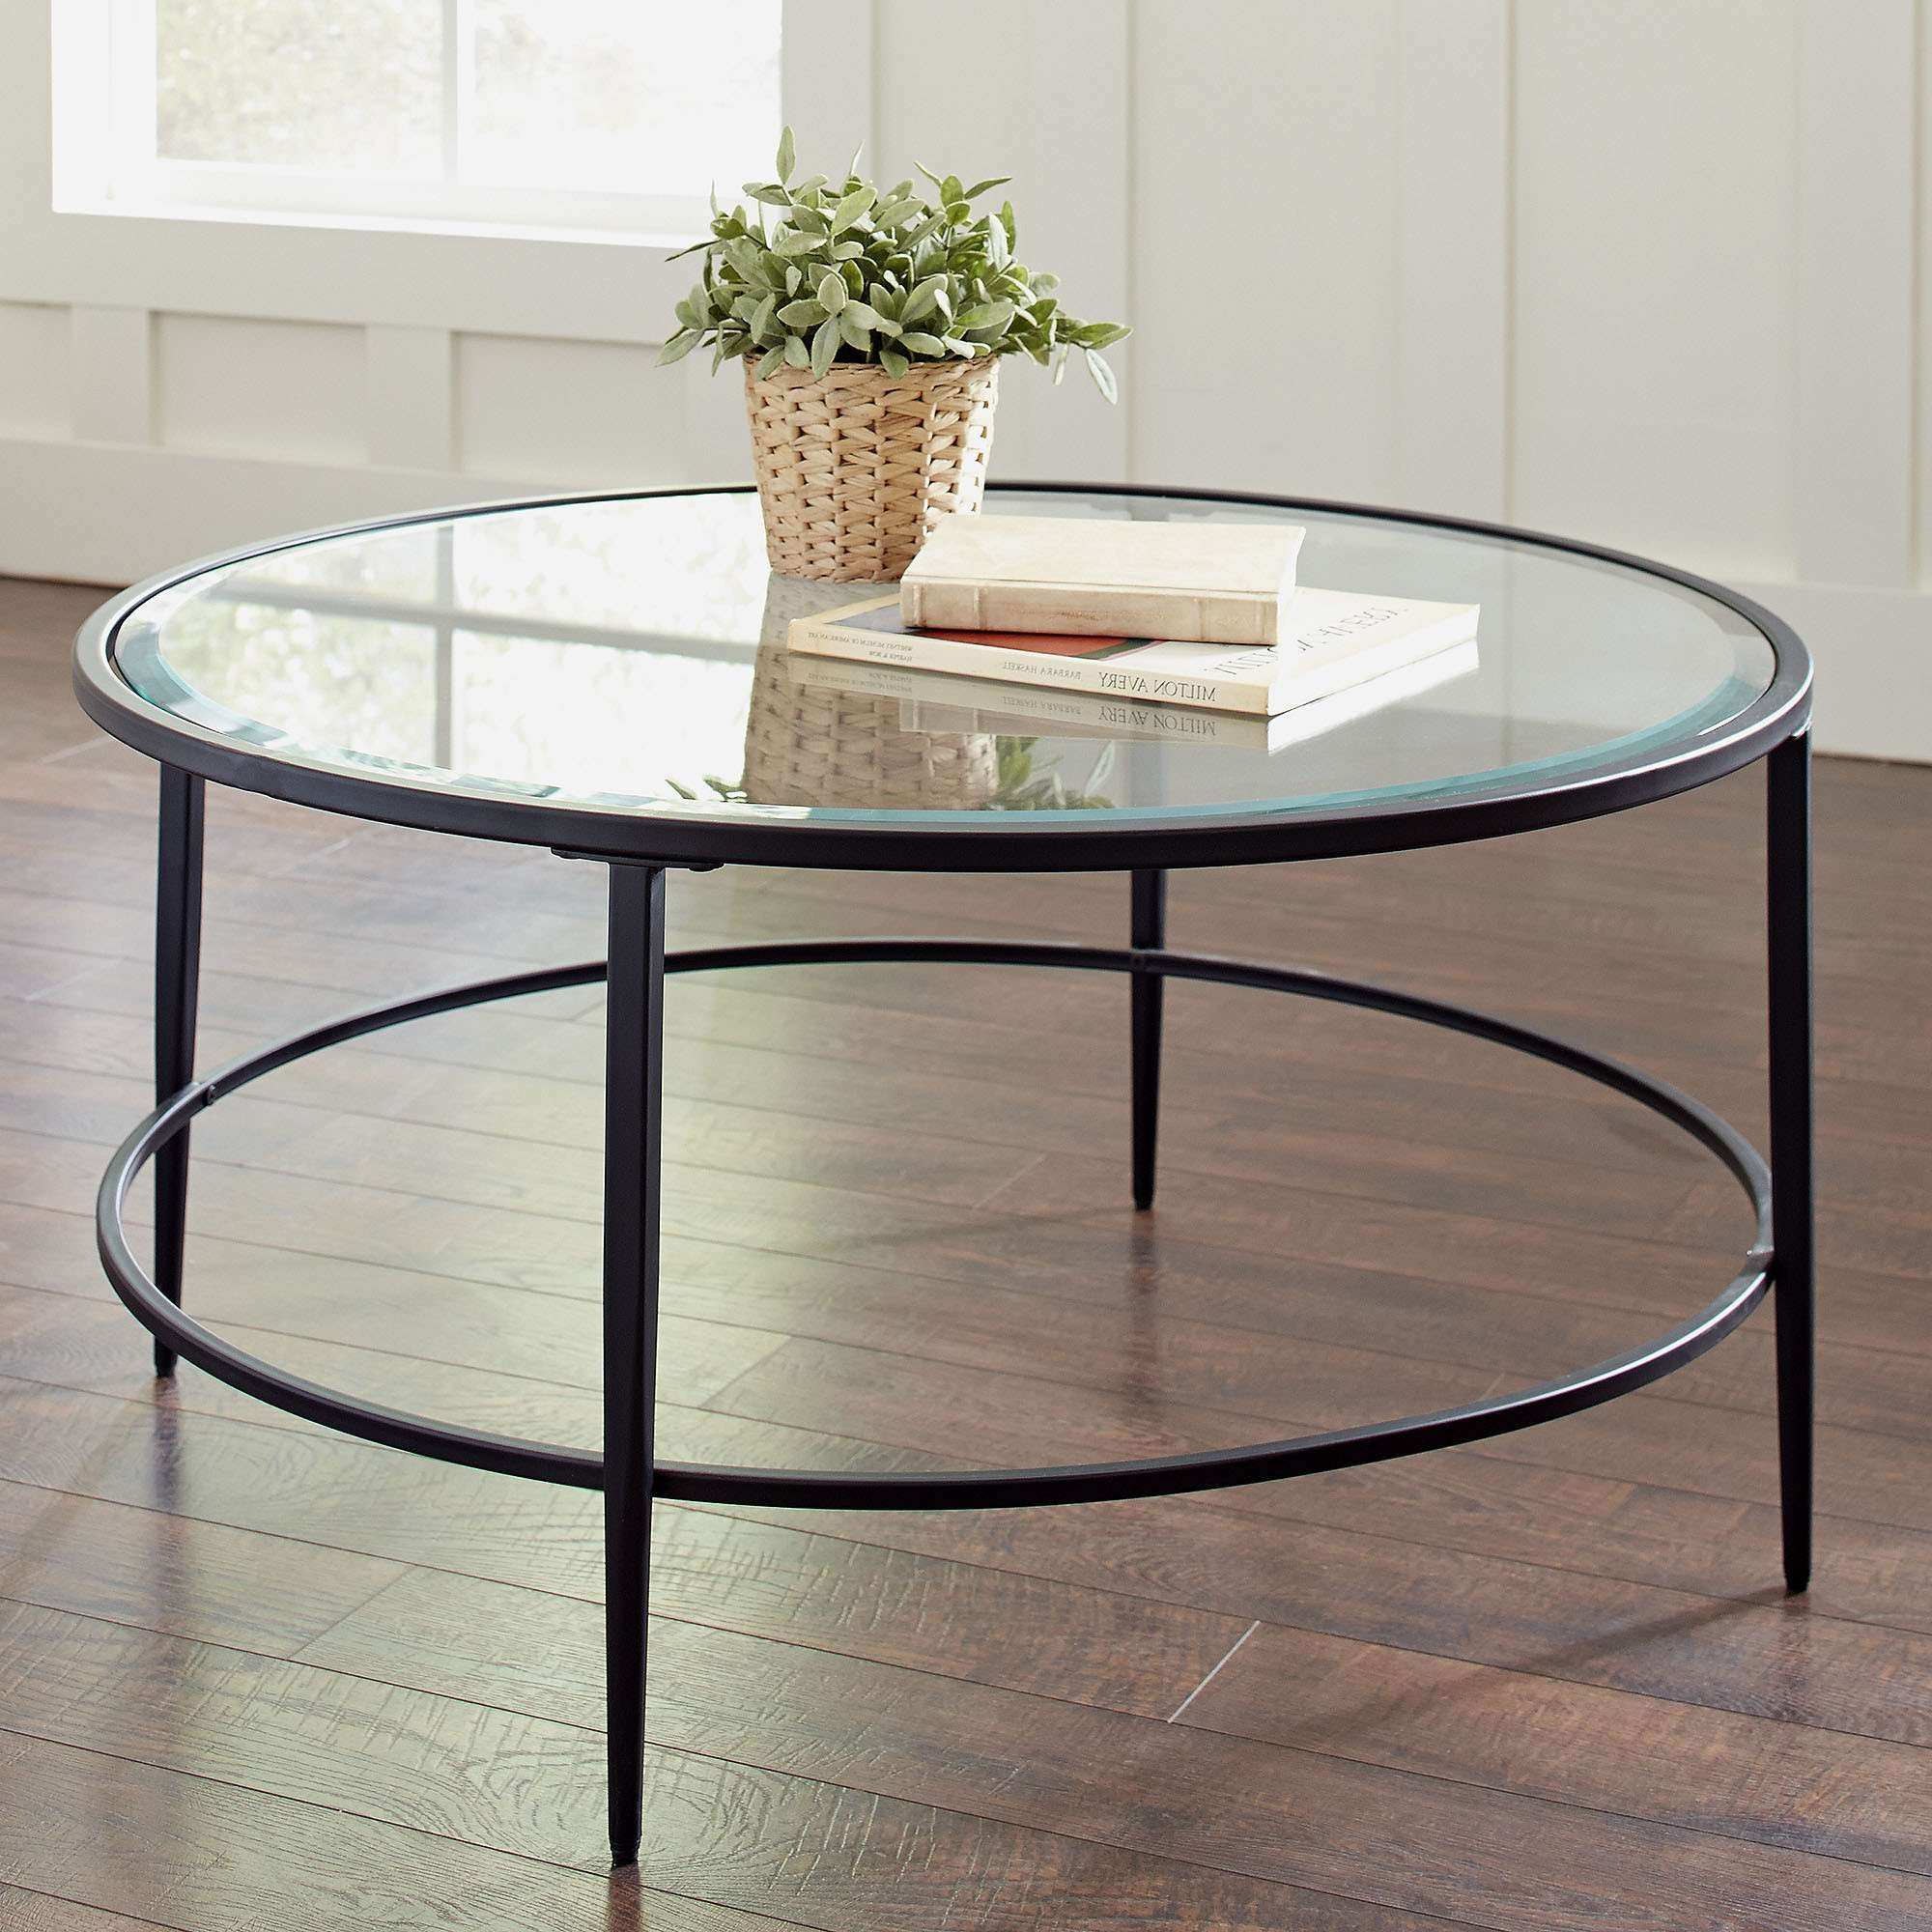 Most Popular Oval Glass Coffee Tables With Regard To Marvellous Glass And Metal Coffee Table Ideas – Glass And Metal (View 17 of 20)